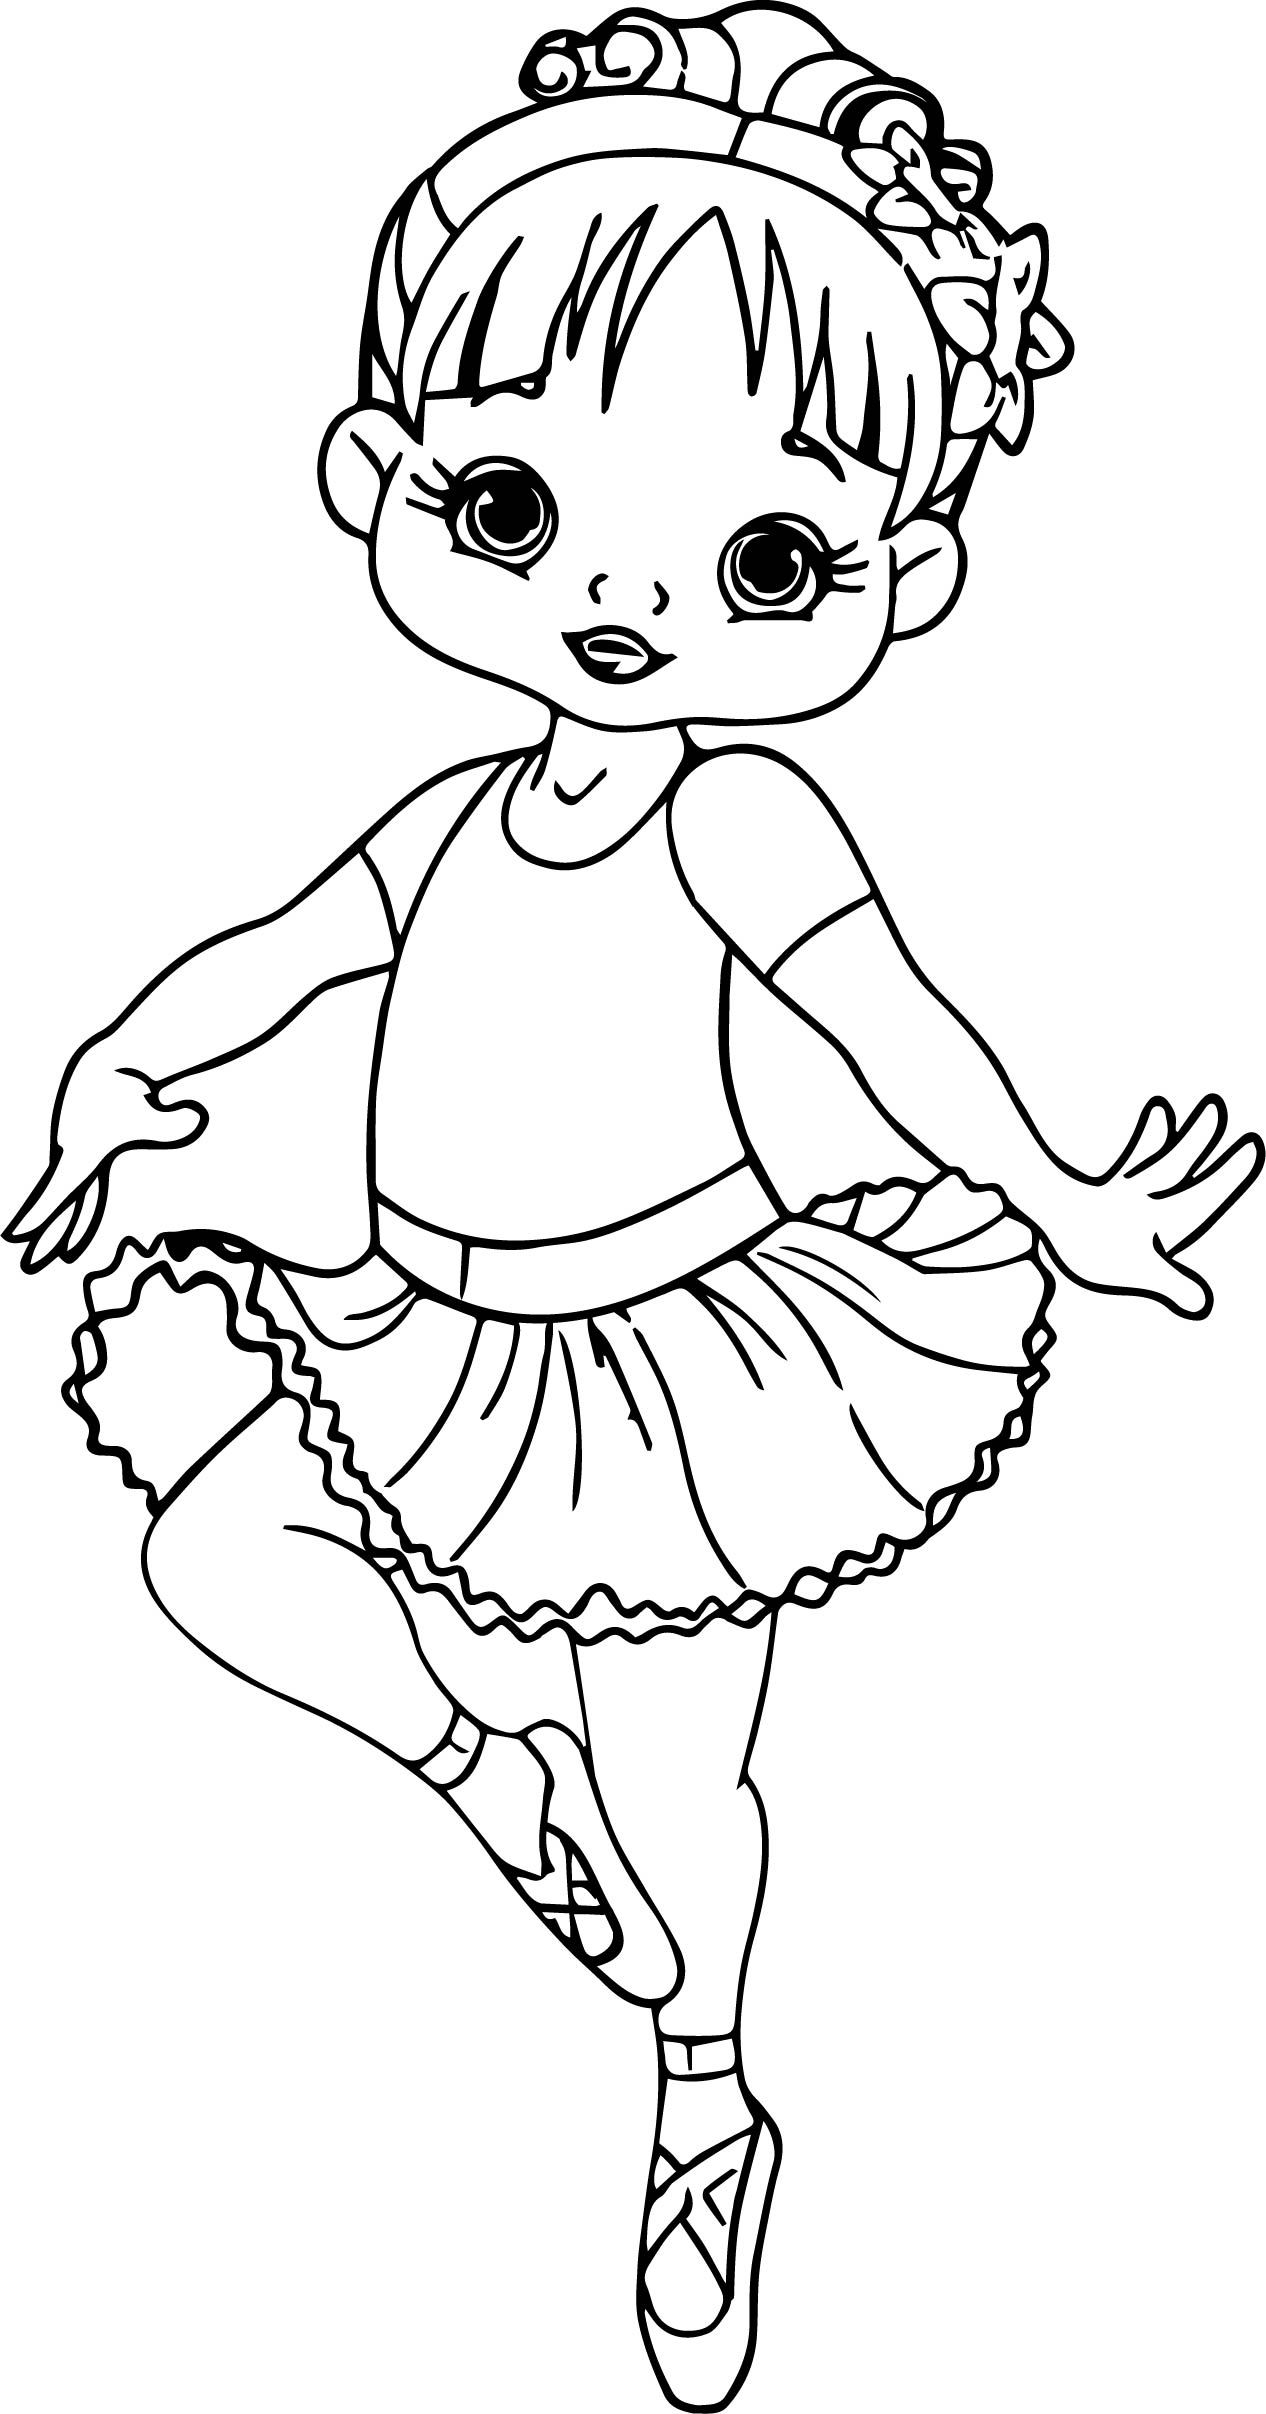 picture of a girl to color happy girl coloring pages download and print for free girl to of picture a color